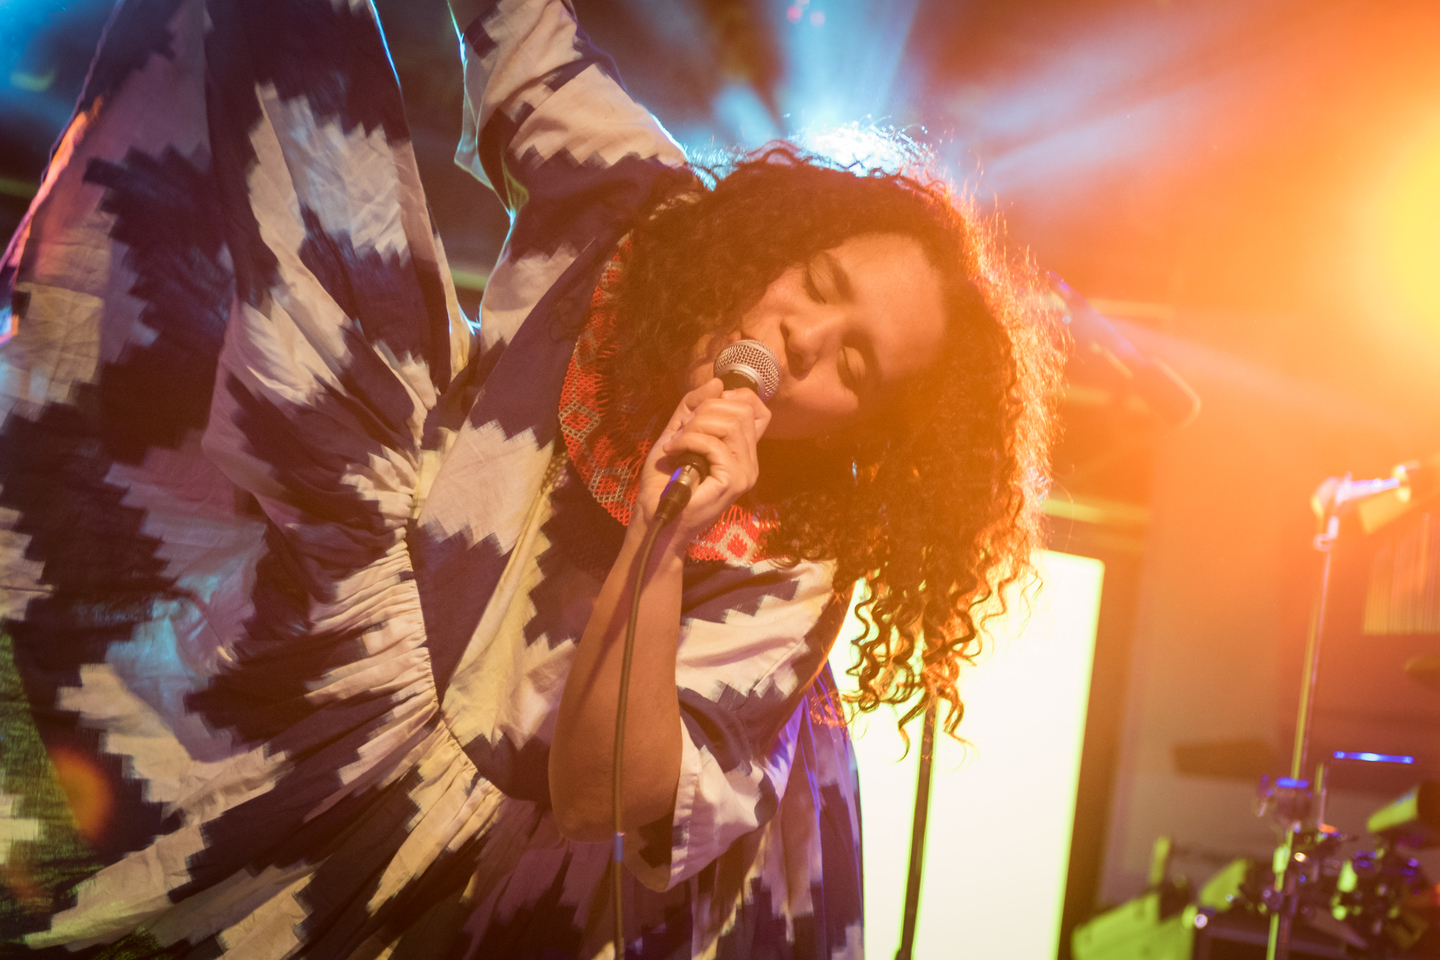 Lido Pimienta, presented by Meow Wolf: Fractallage. Photo by Tico Mendoza